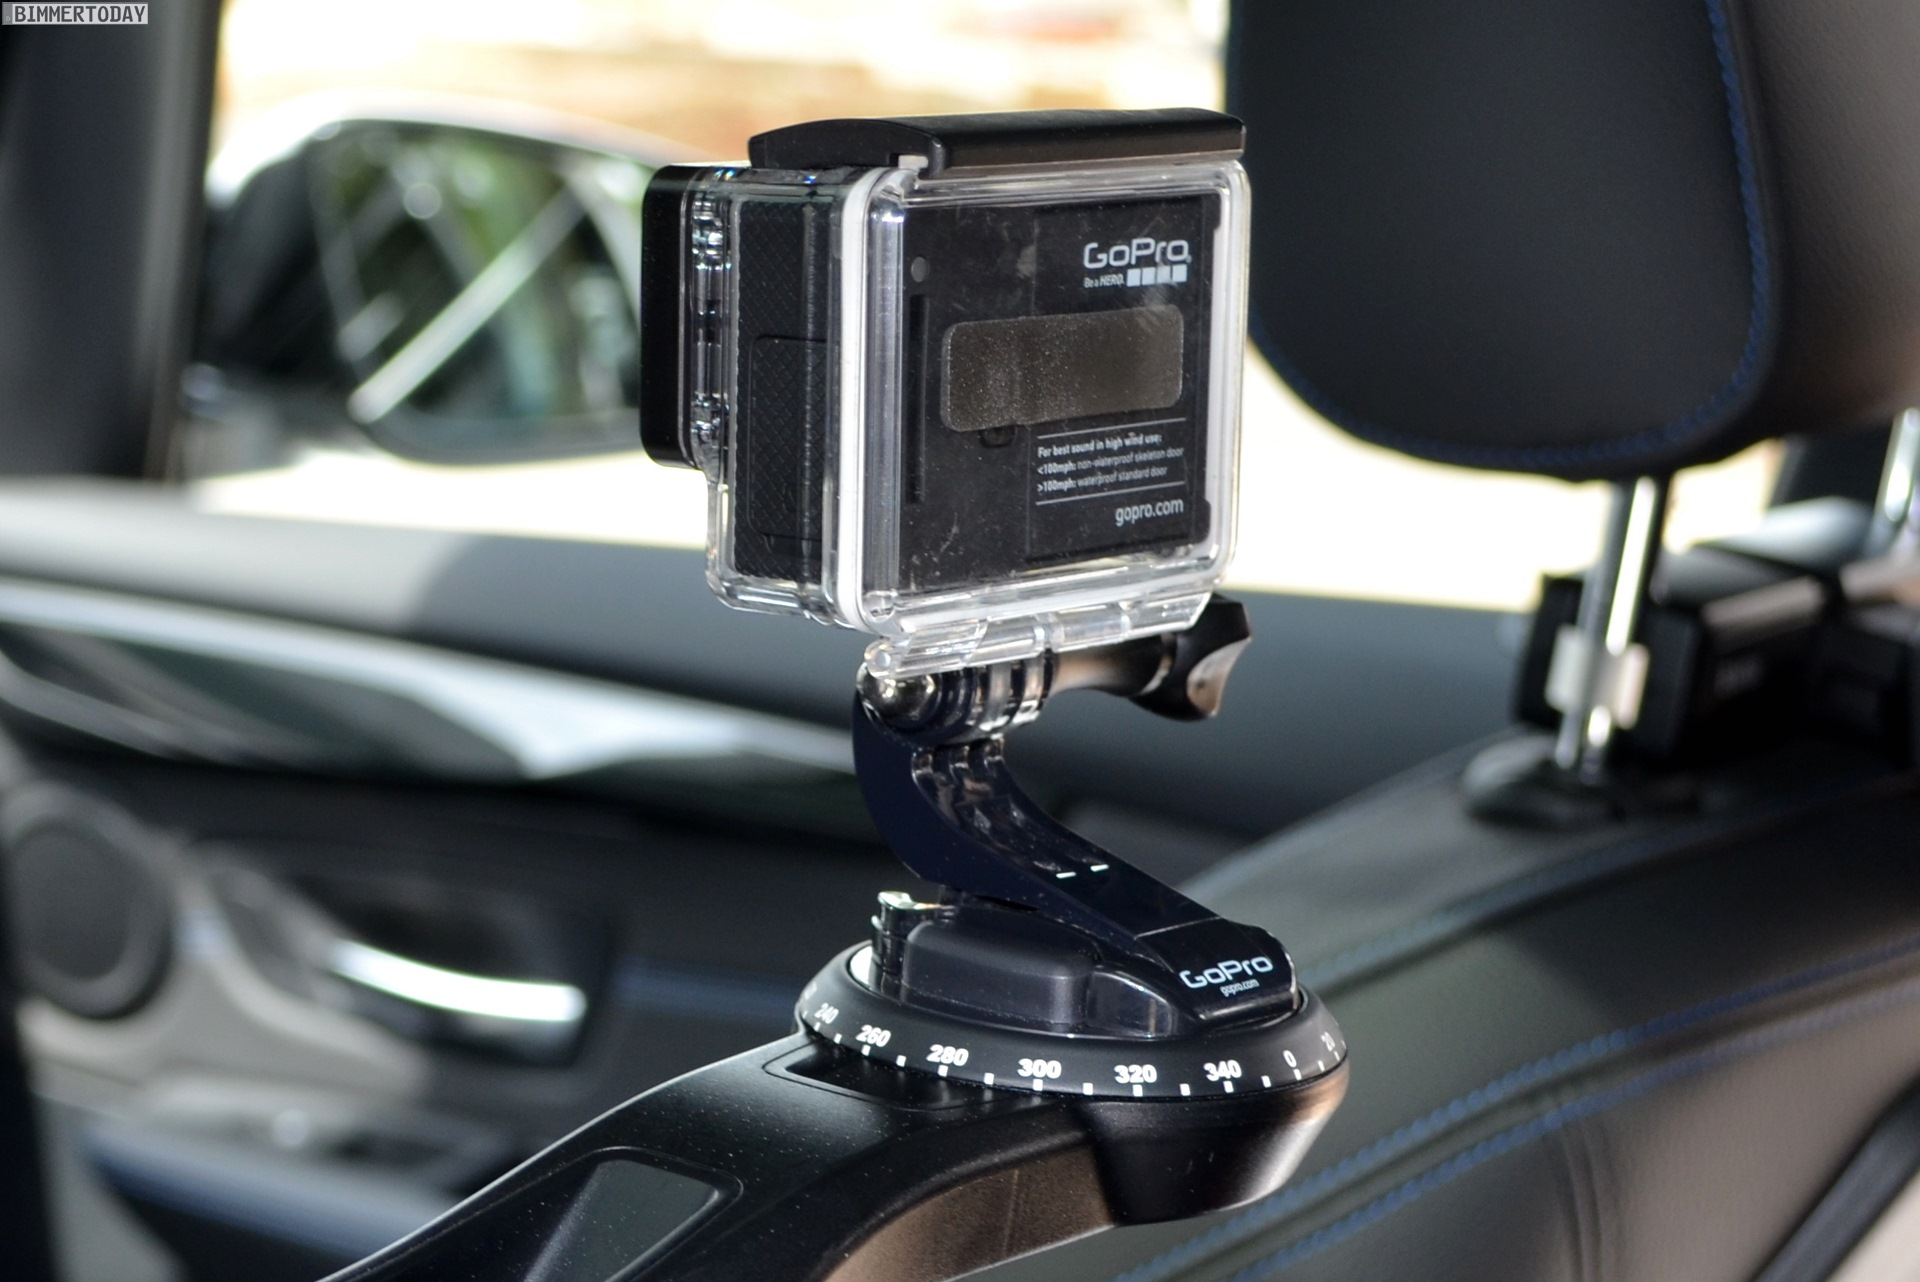 BMW Mounting Accessories for GoPro Cameras